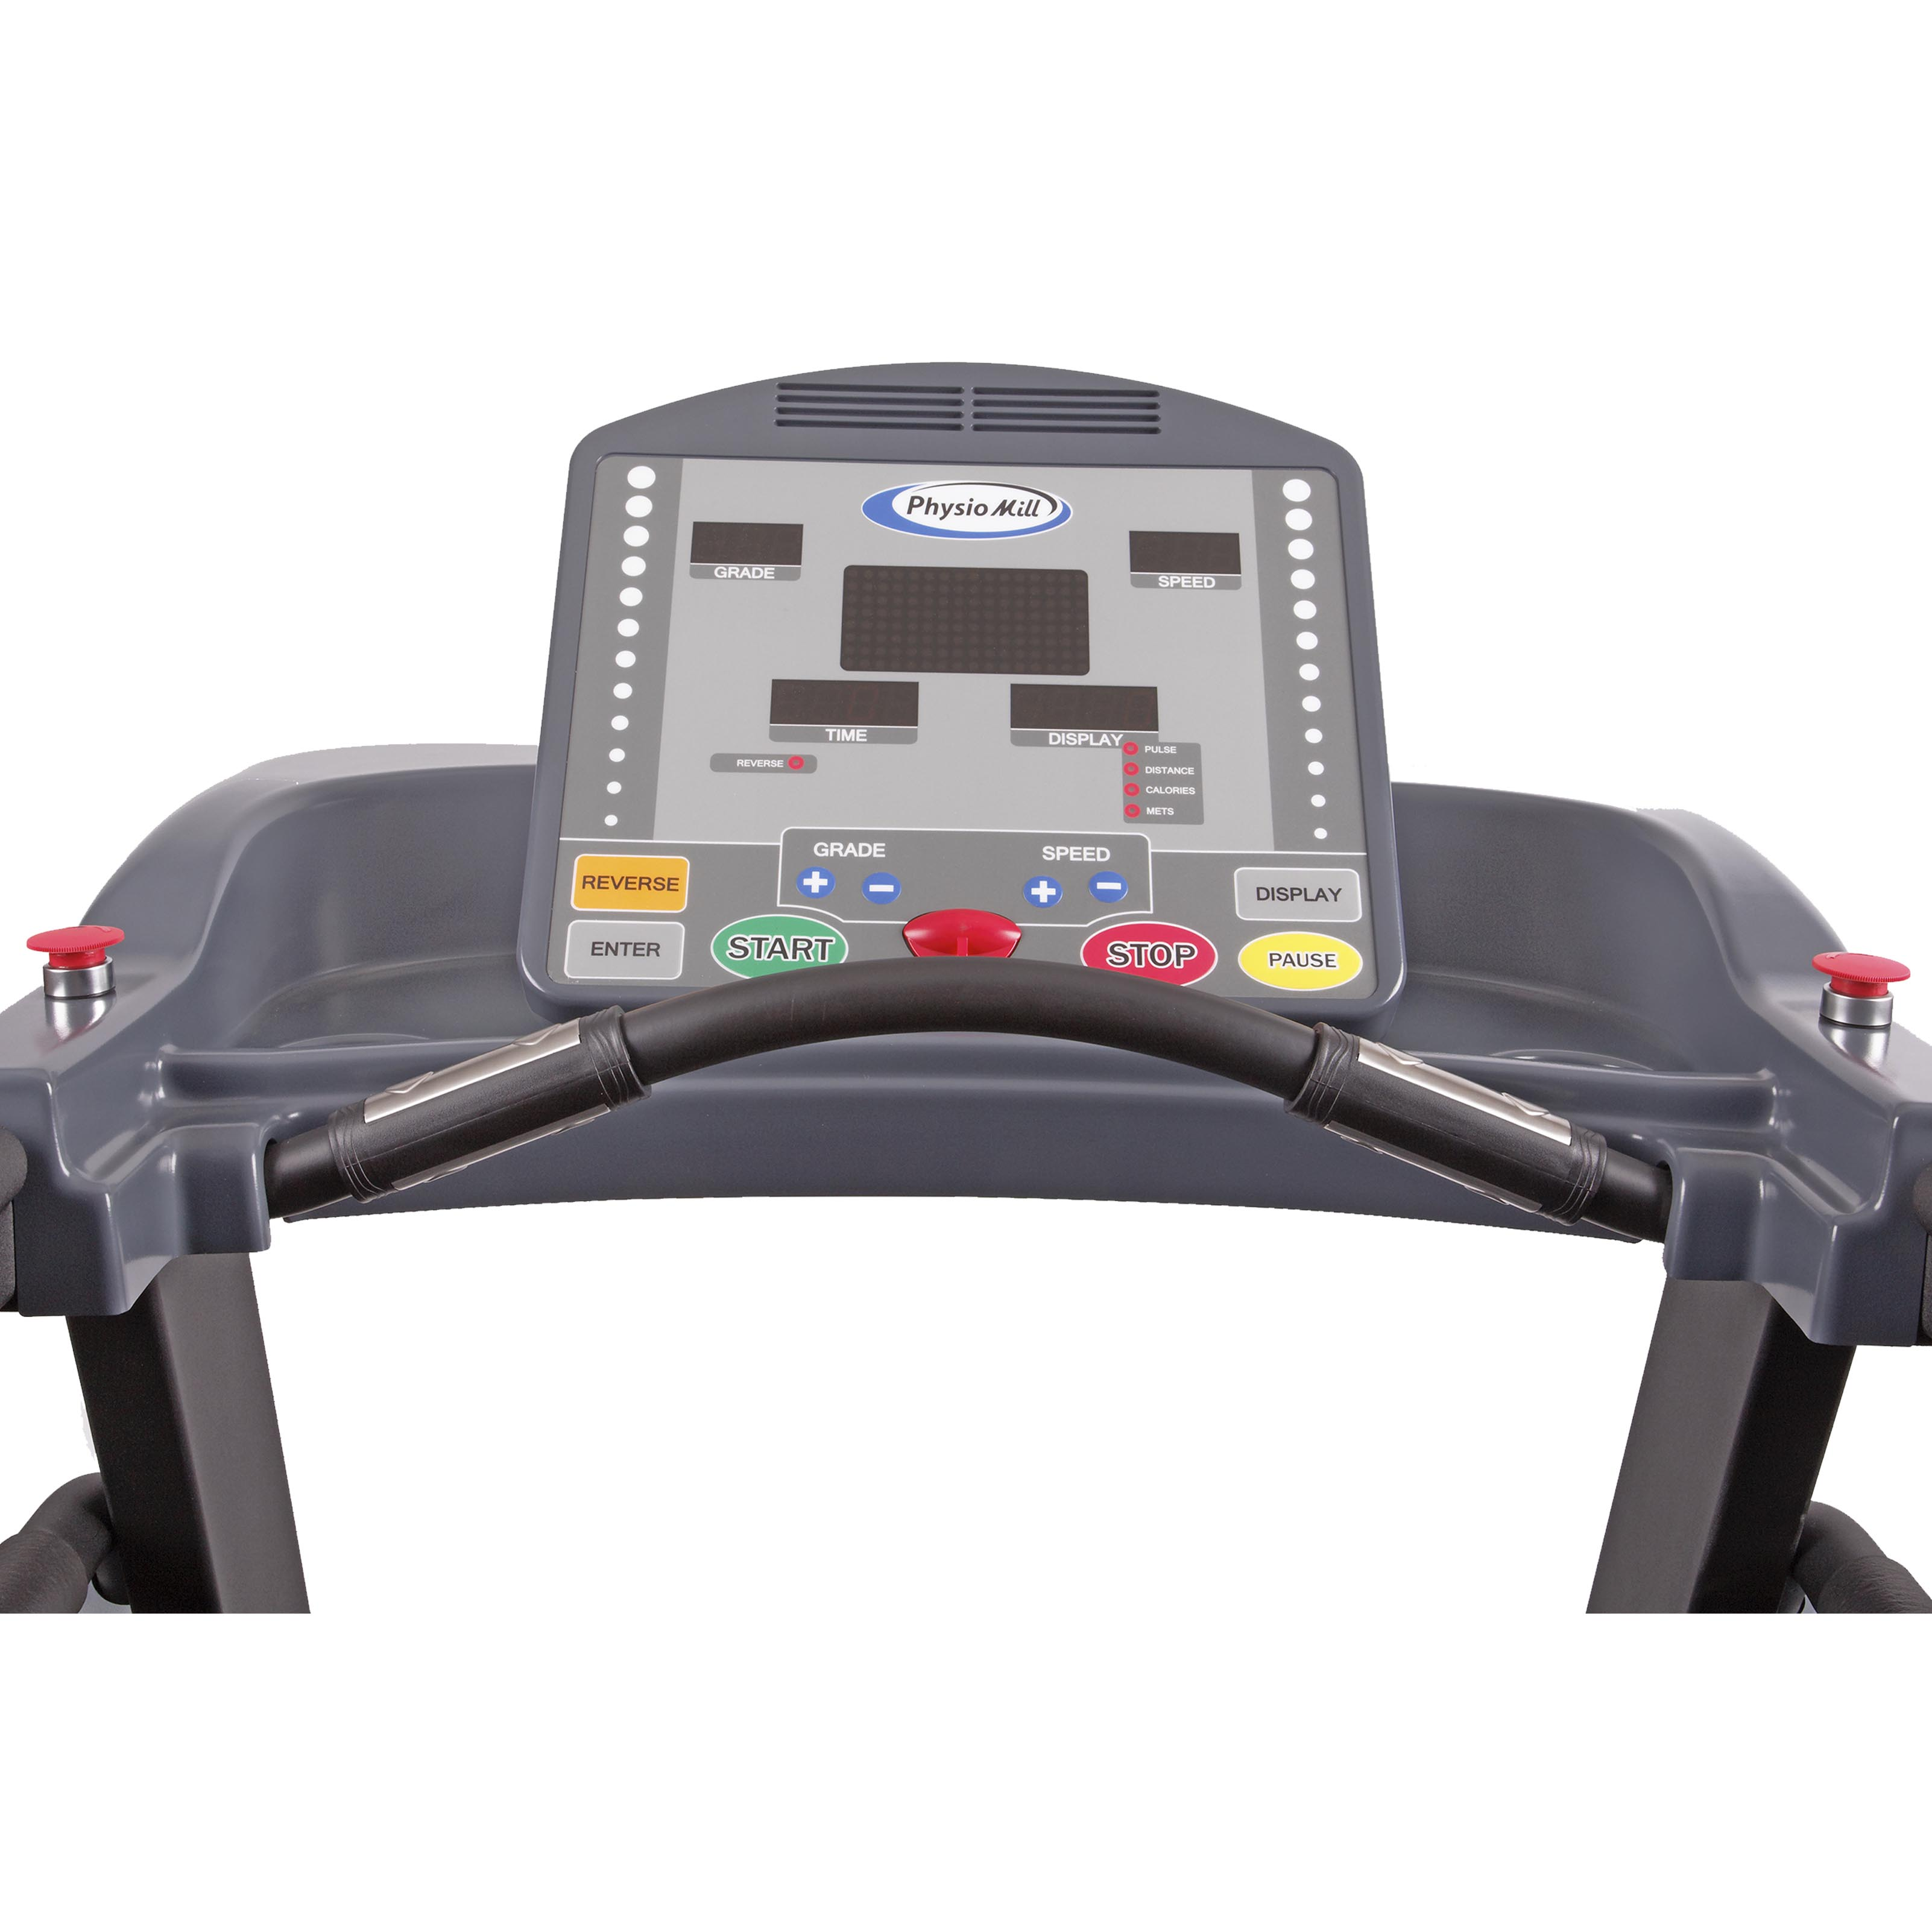 PhysioMill Rehabilitation Treadmill Display